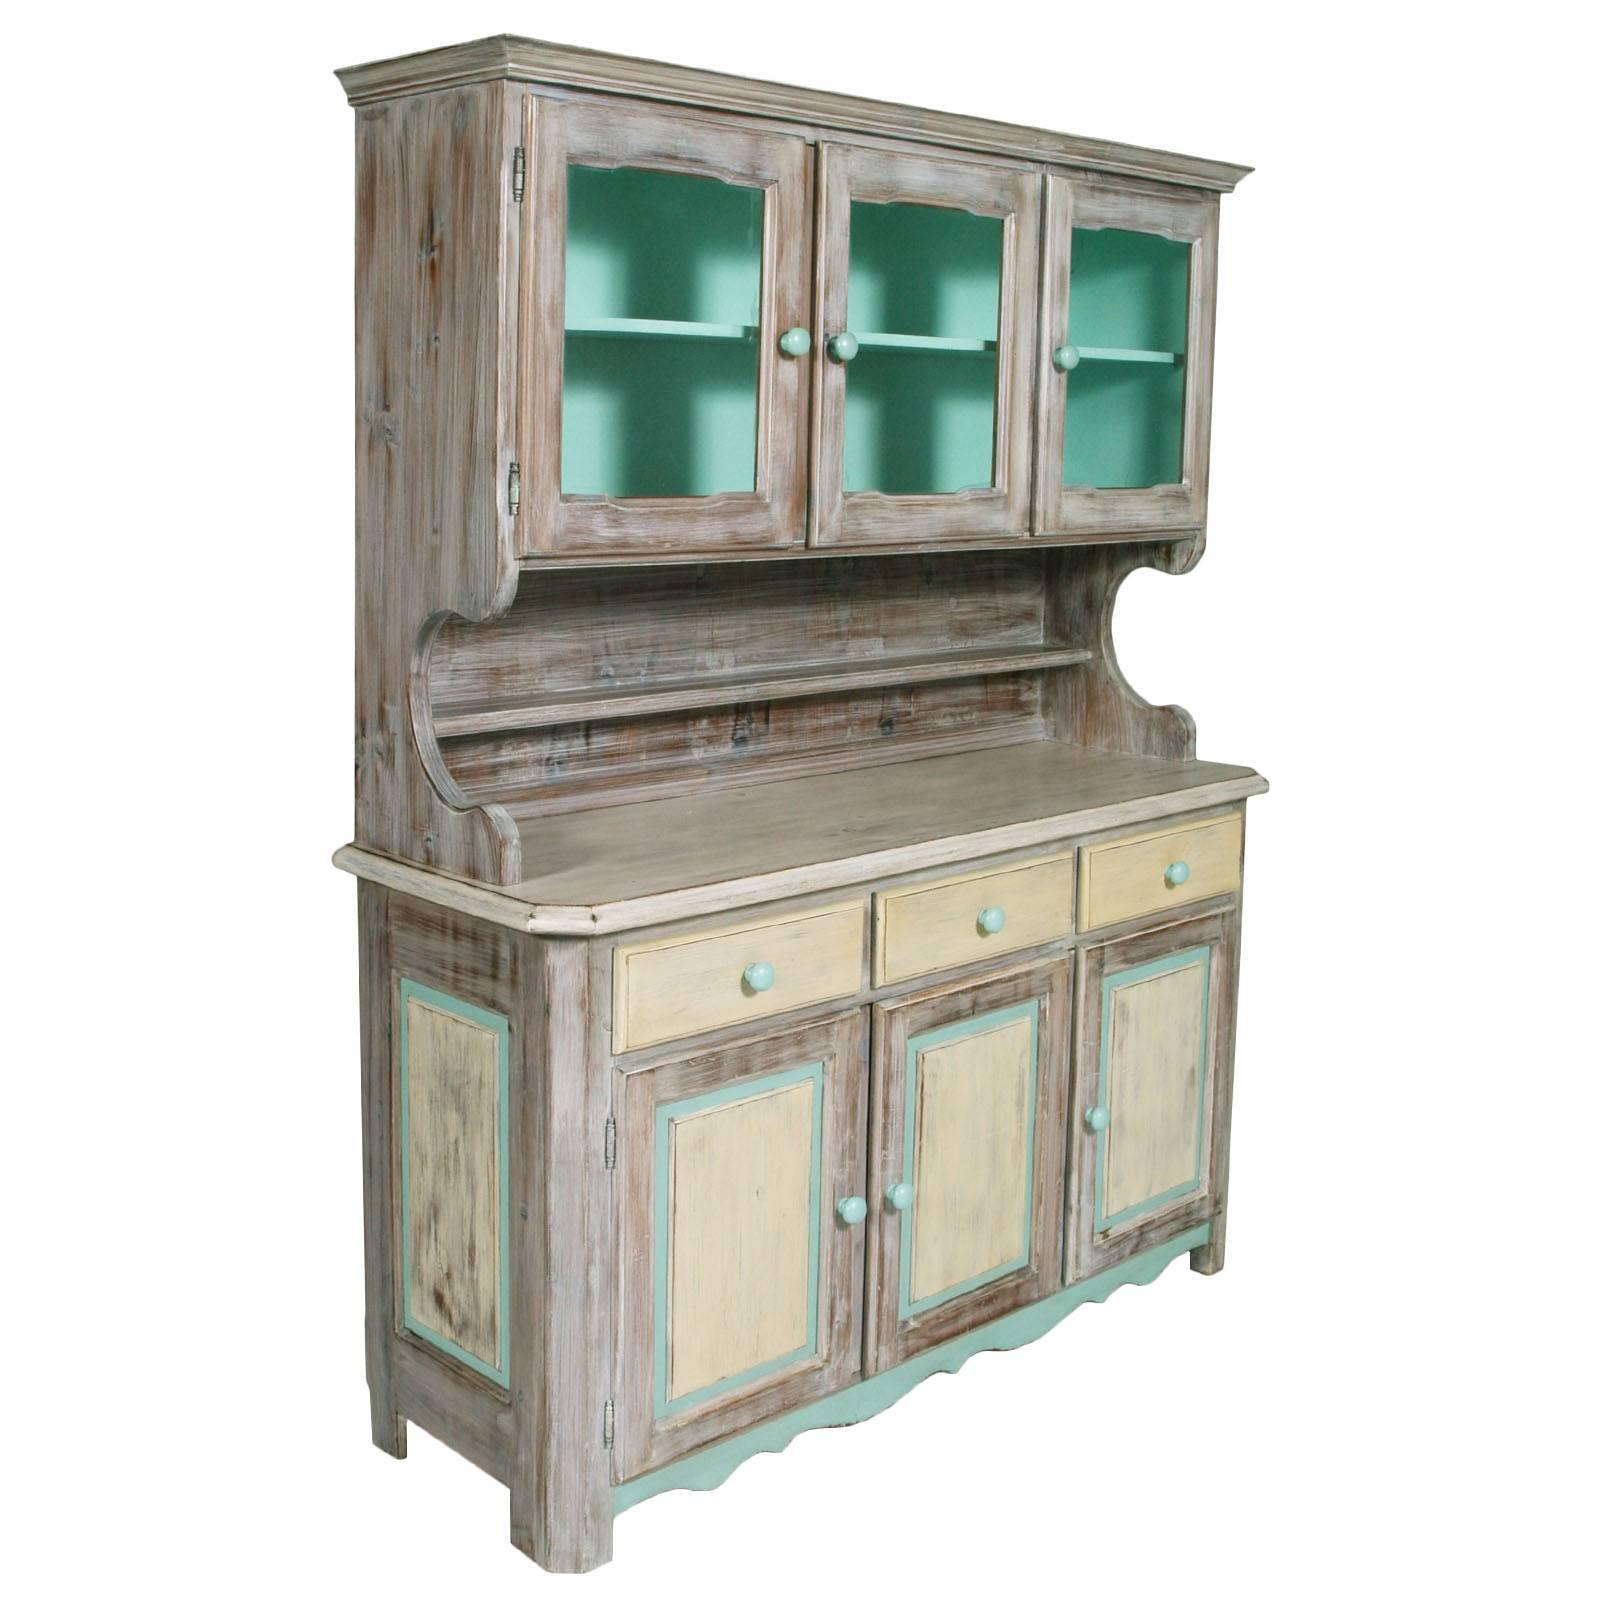 Italian 1940s Country Shabby Buffet Sideboard with Display Cabinet